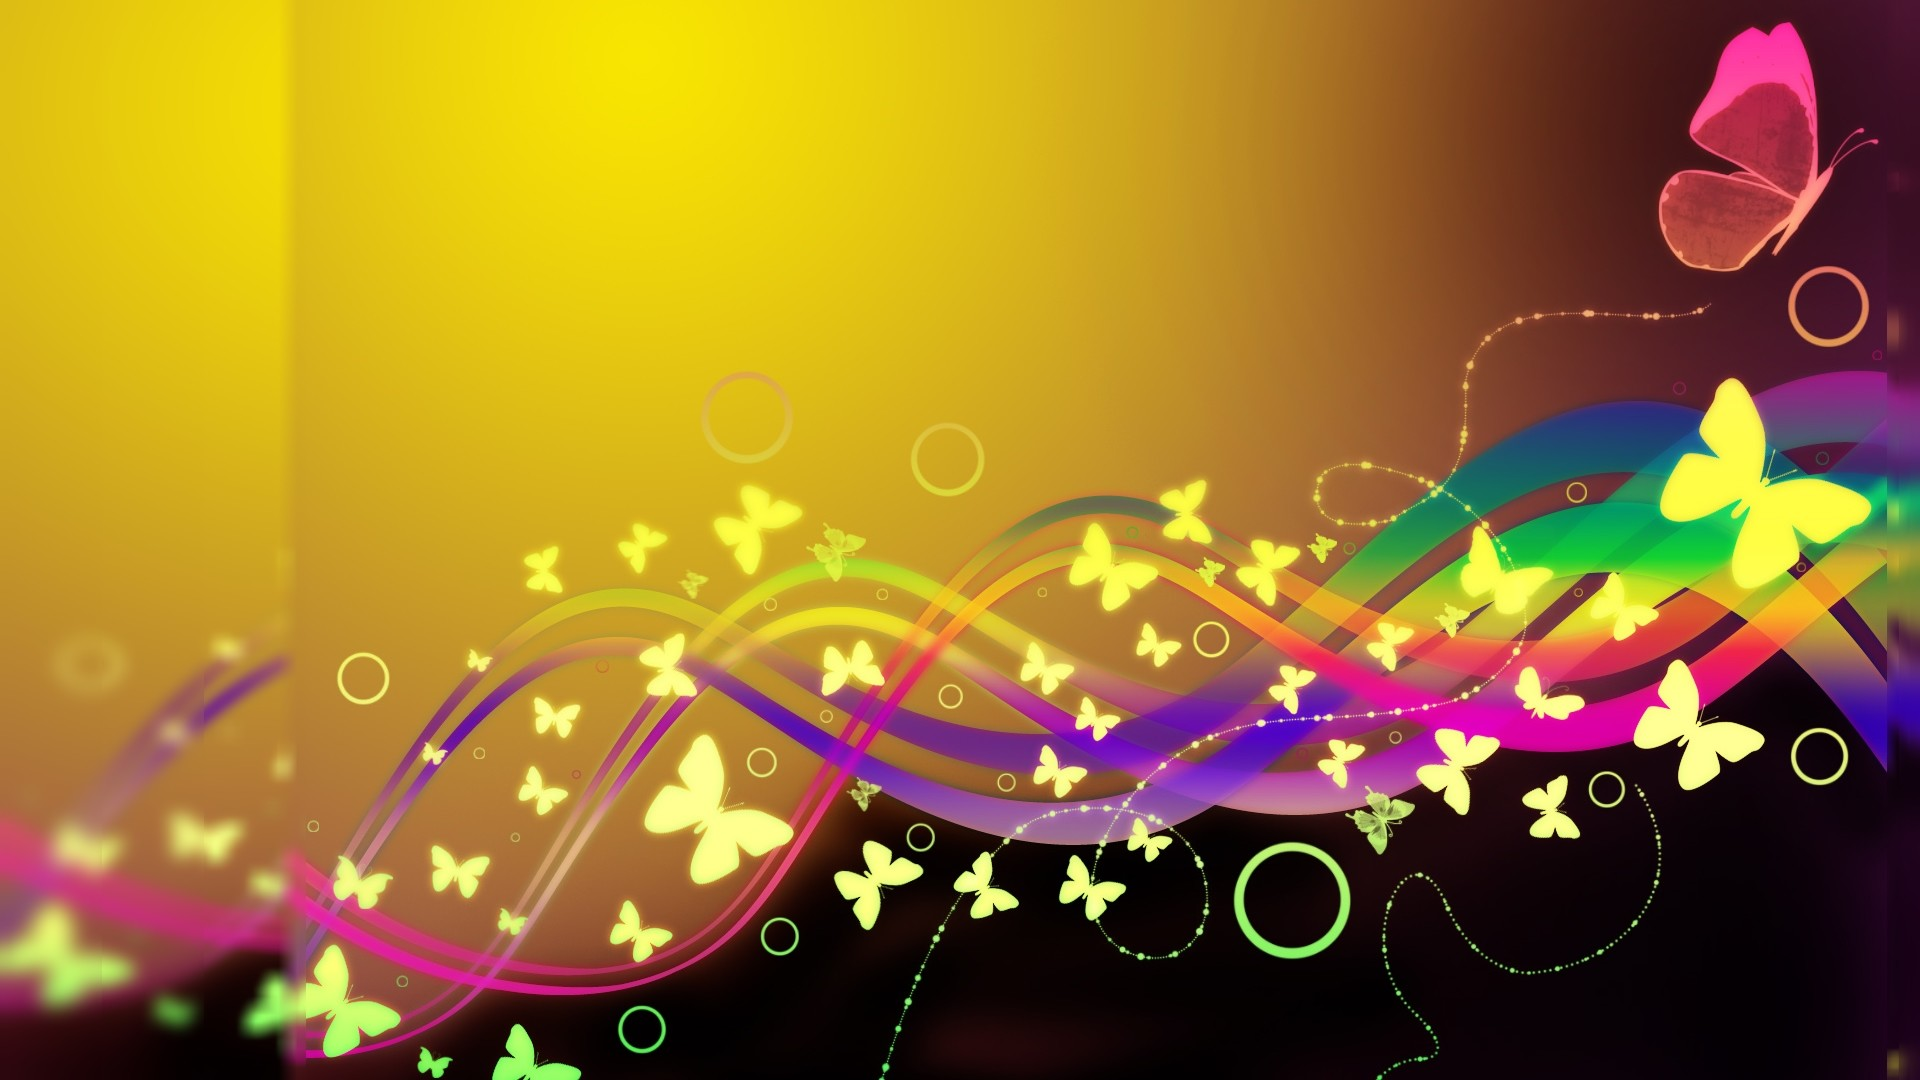 Cute Colorful Backgrounds 50 Pictures